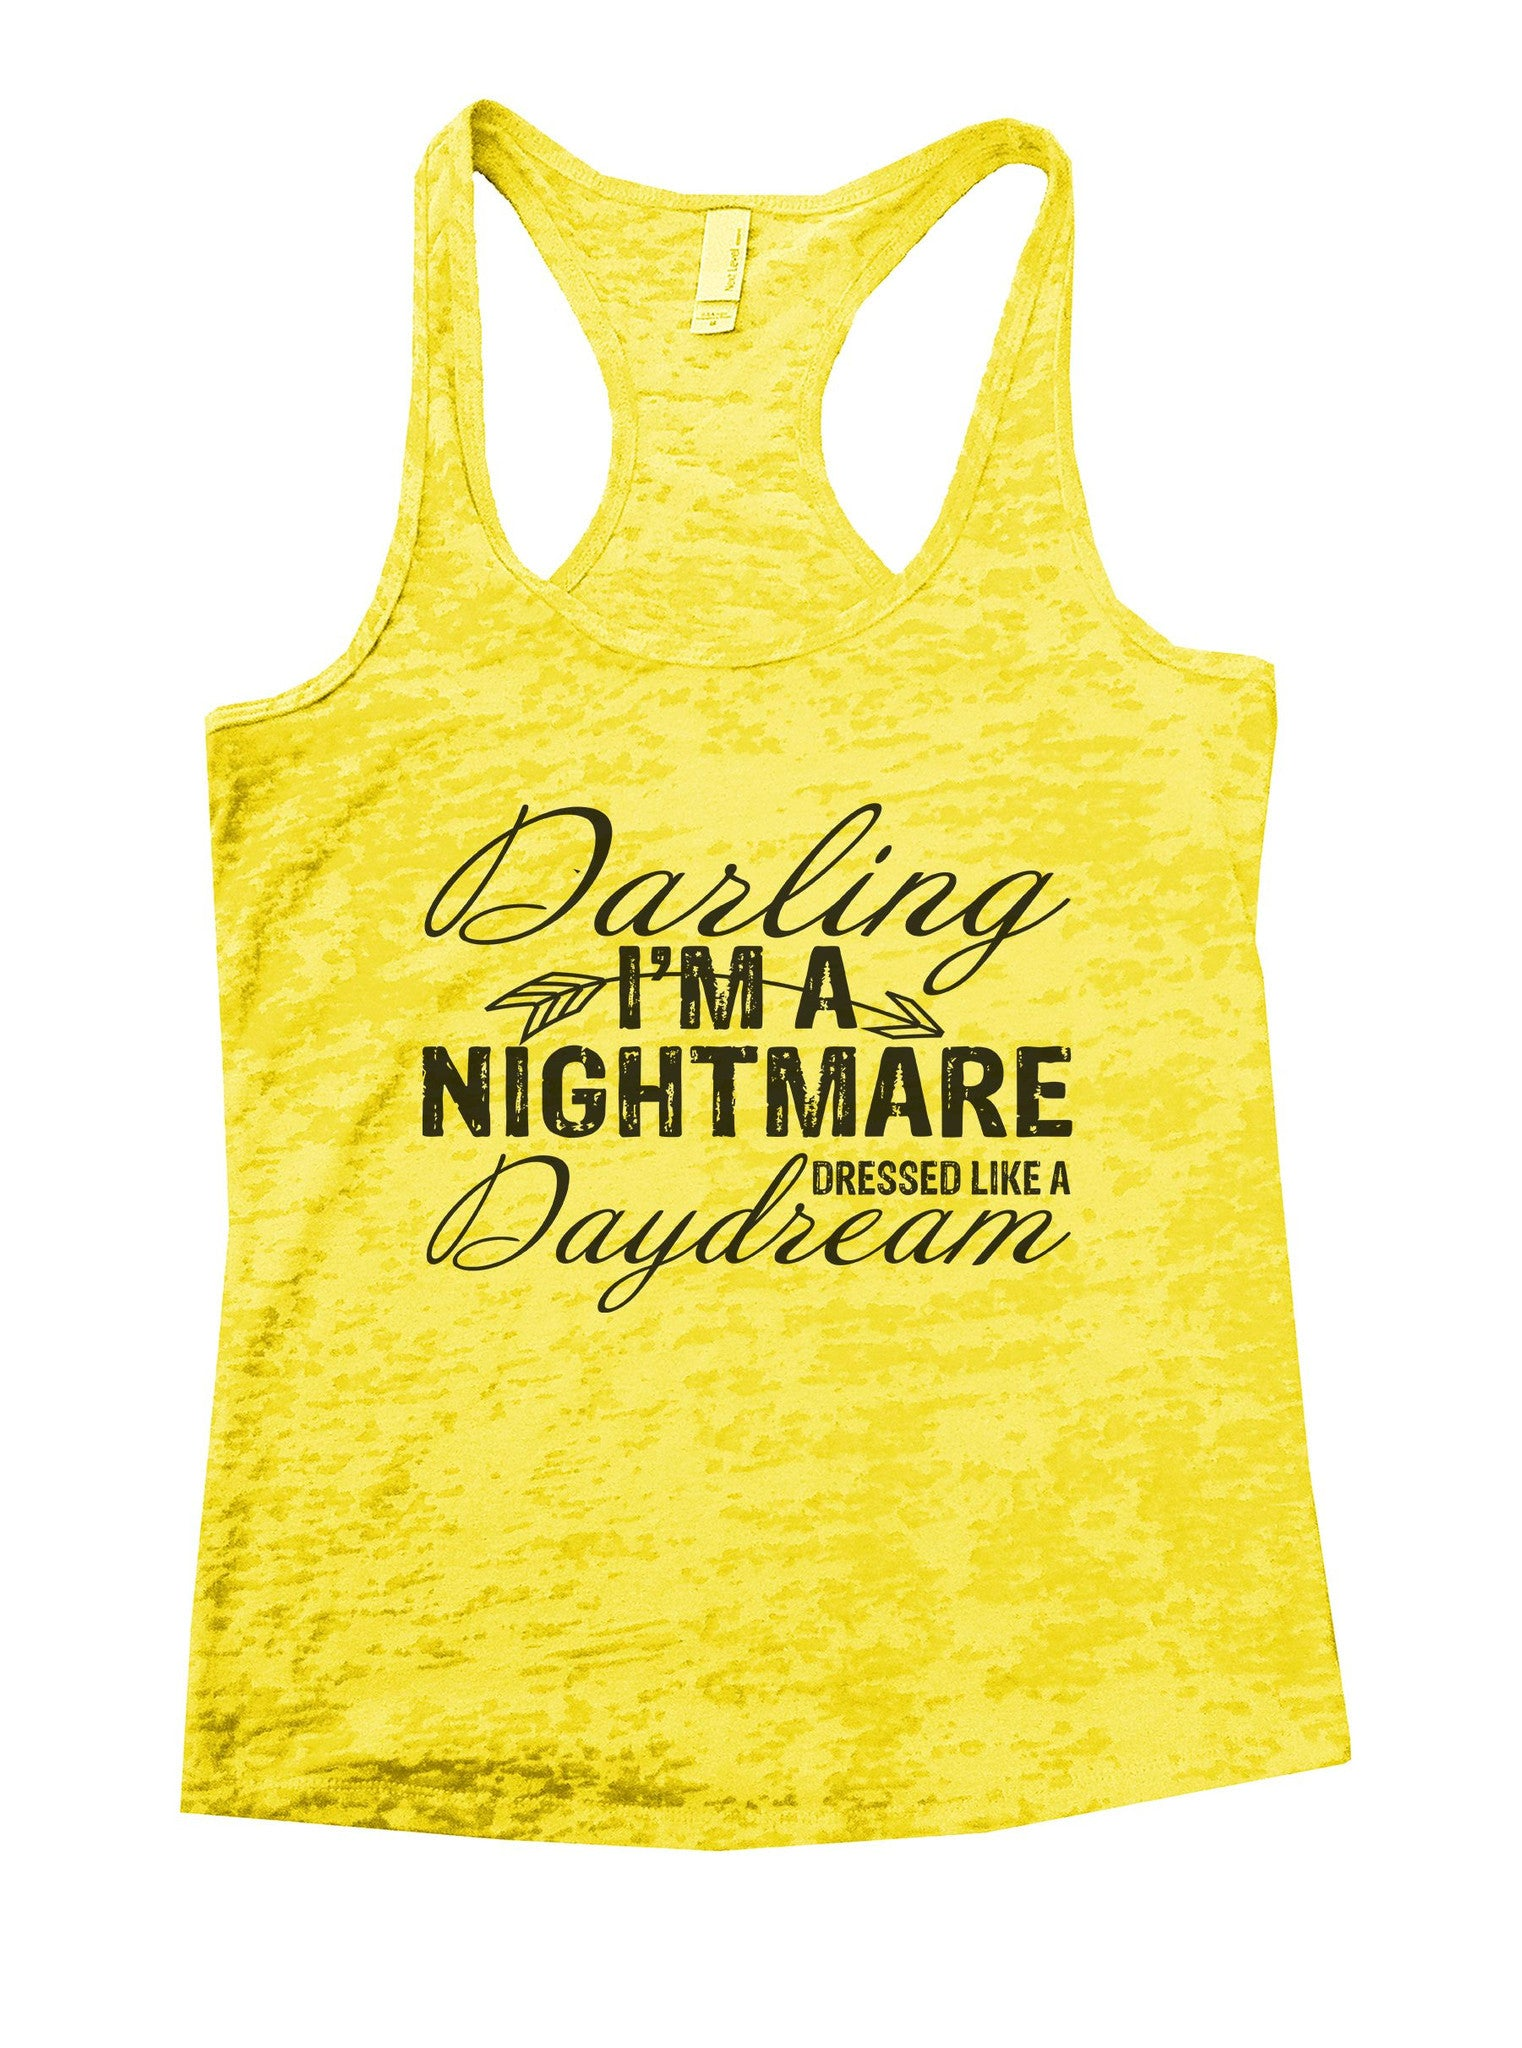 Darling I'm A Nightmare Dressed Like A Daydream Burnout Tank Top By BurnoutTankTops.com - 930 - Funny Shirts Tank Tops Burnouts and Triblends  - 7